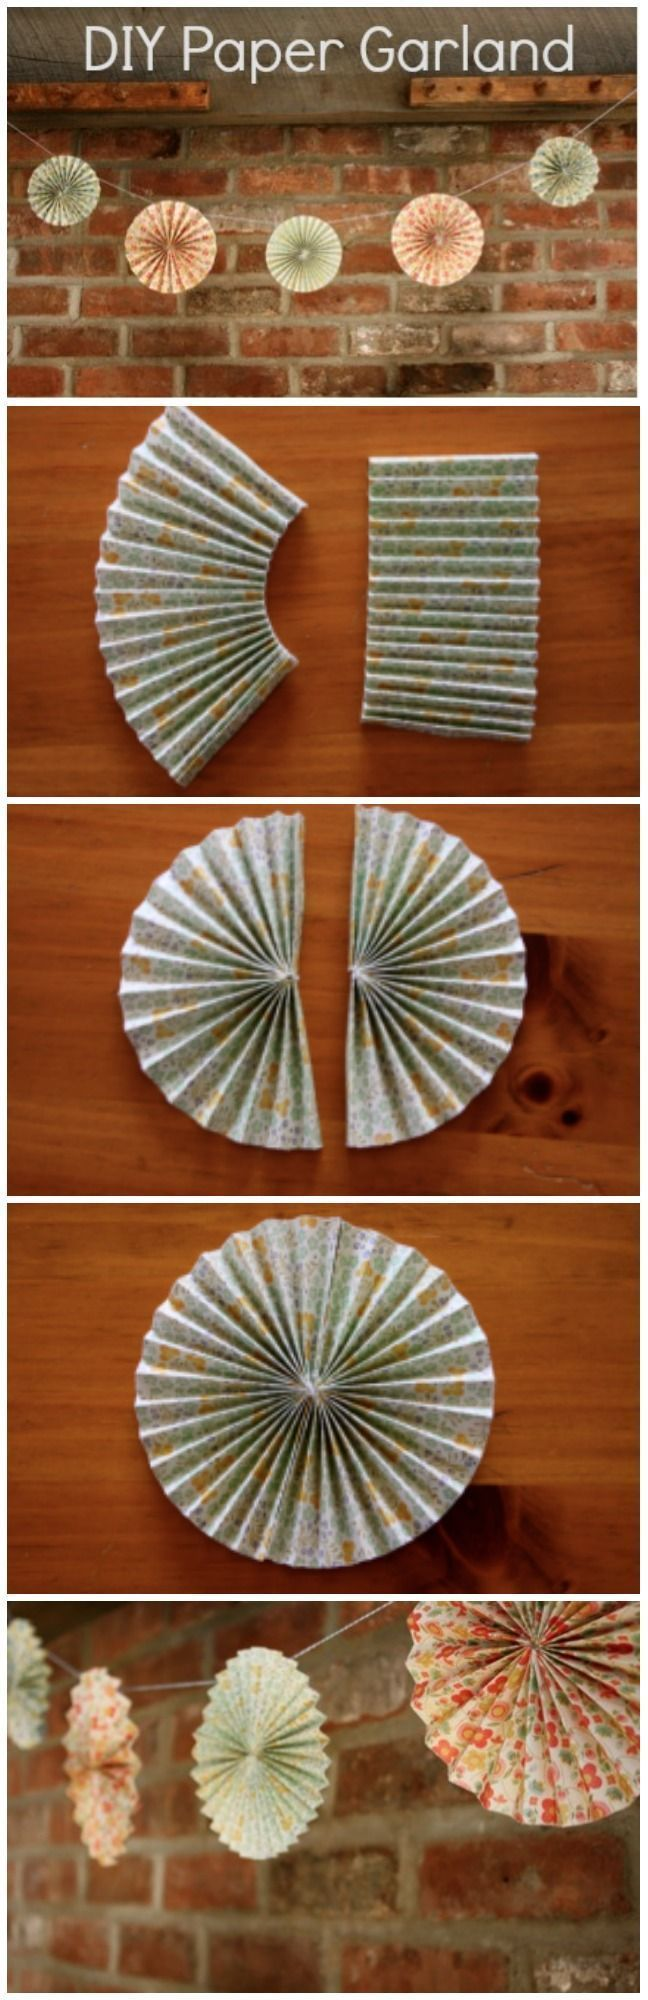 Paper Garland How To                                                                                                                                                     More